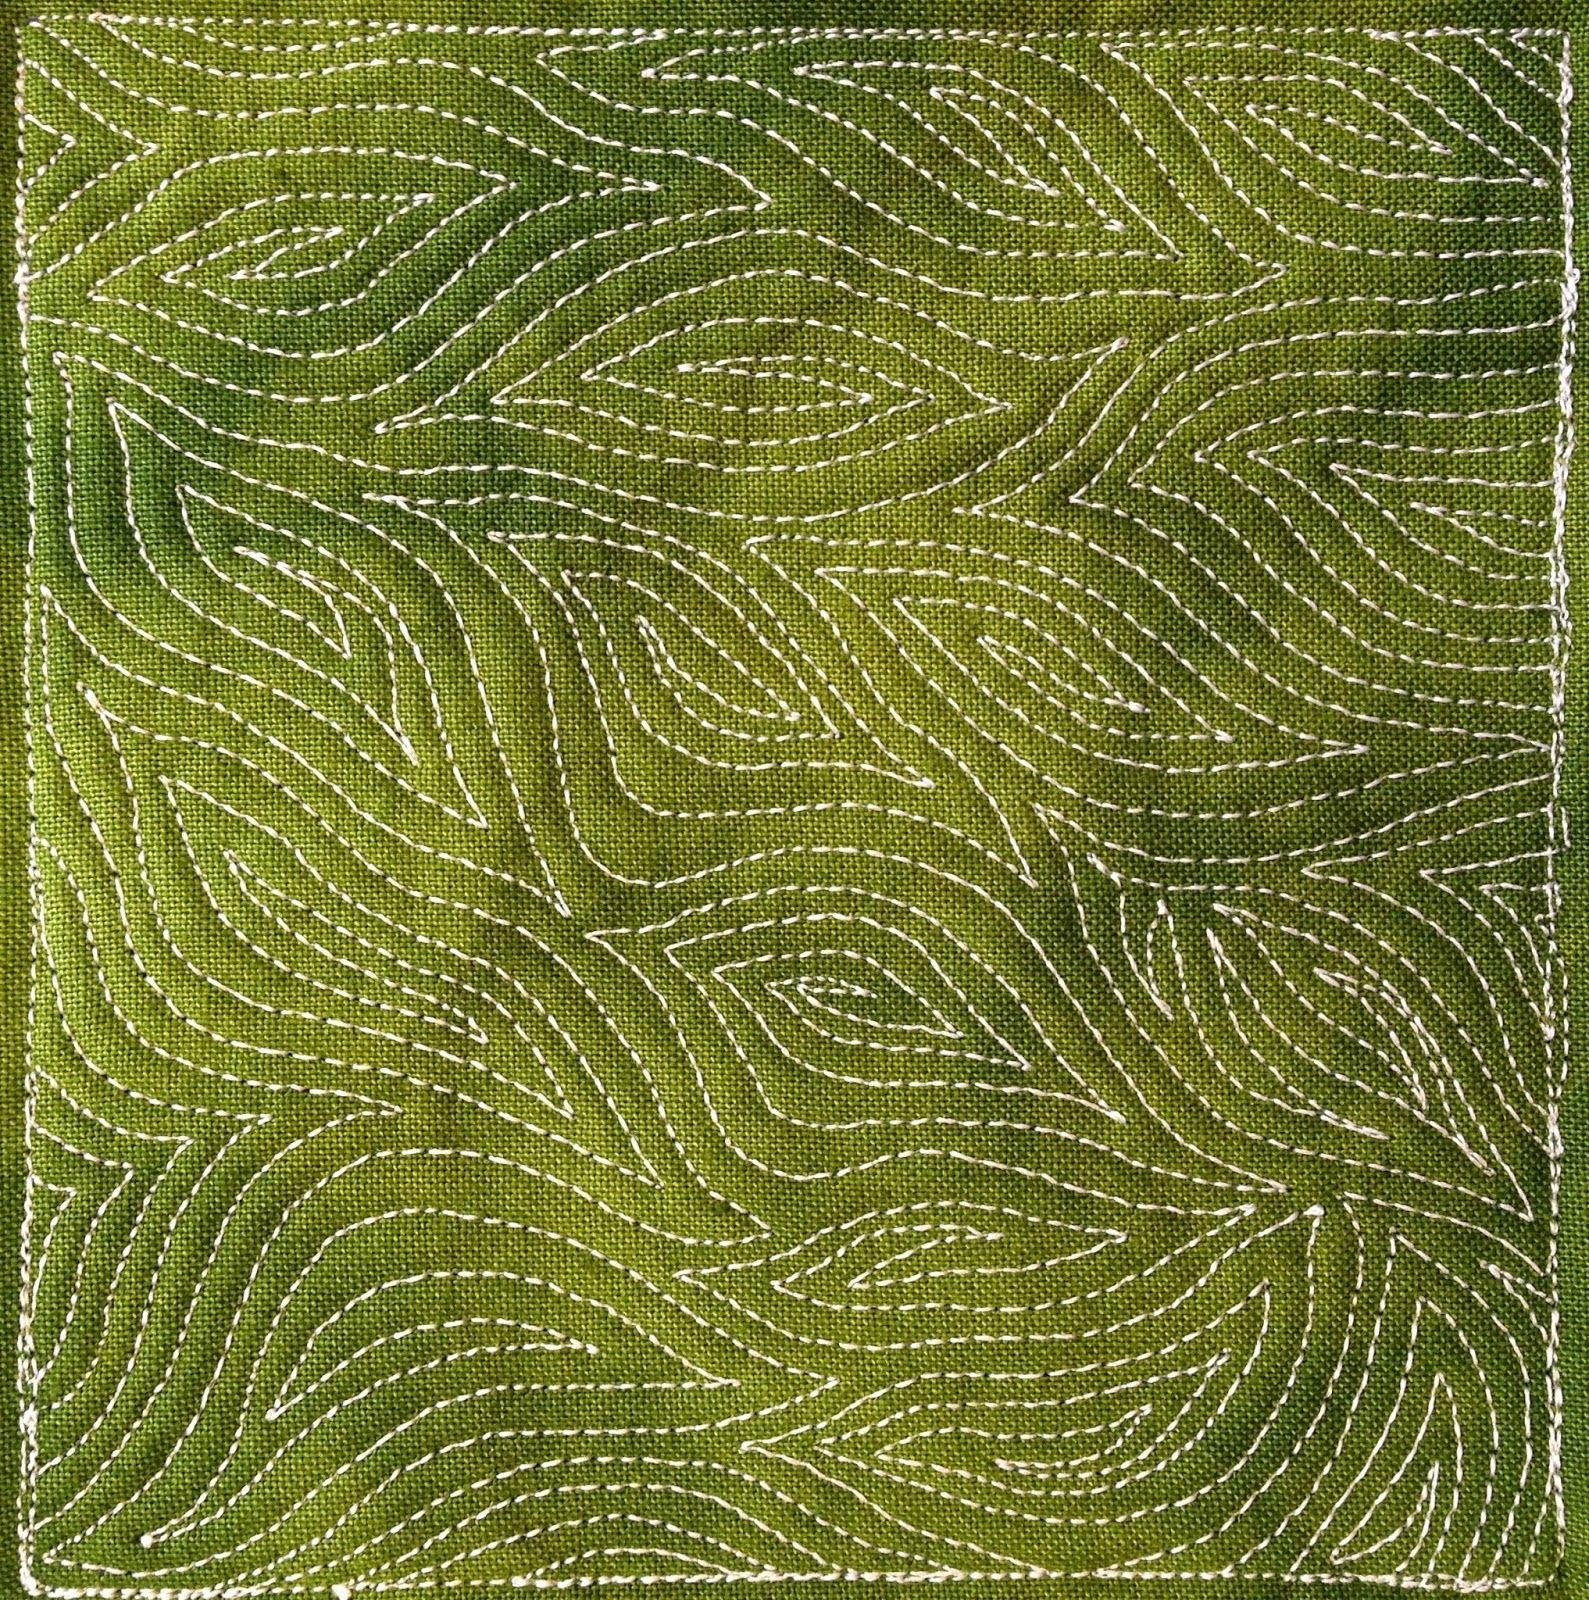 Check Out This Cool Blazing Spiral Free Motion Quilting Design By Leah Day Http Free Motion Quilt Designs Free Motion Quilting Free Motion Quilting Patterns